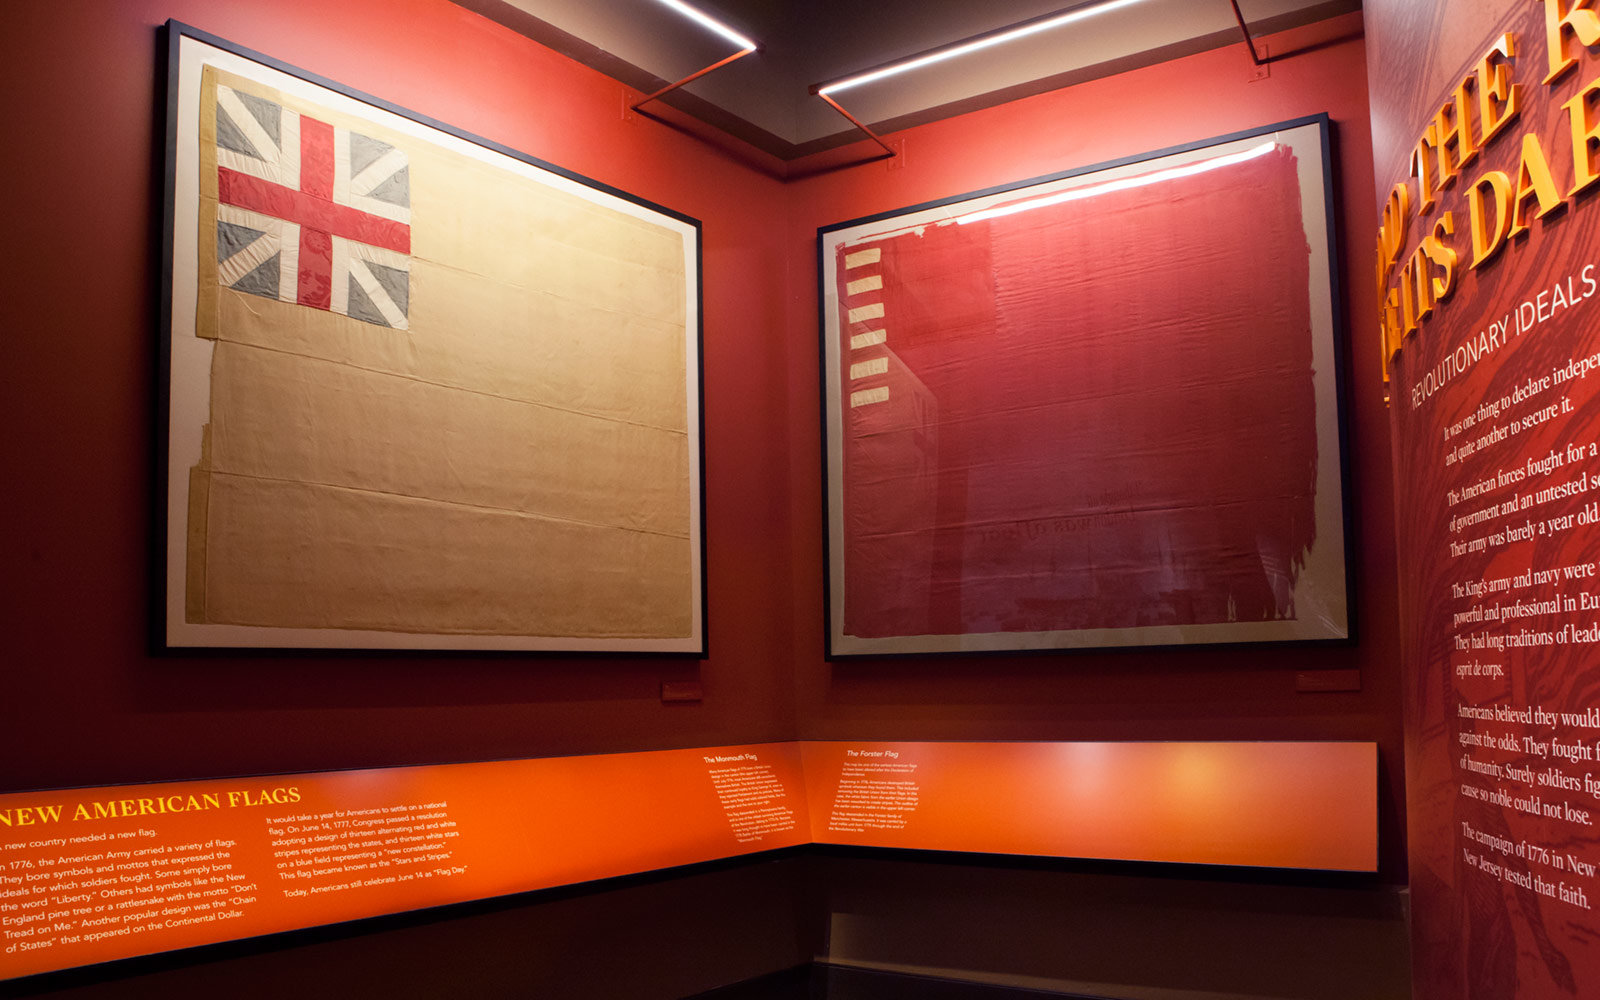 Revolutionary Flags, Museum of the American Revolution, Philadelphia, Pennsylvania